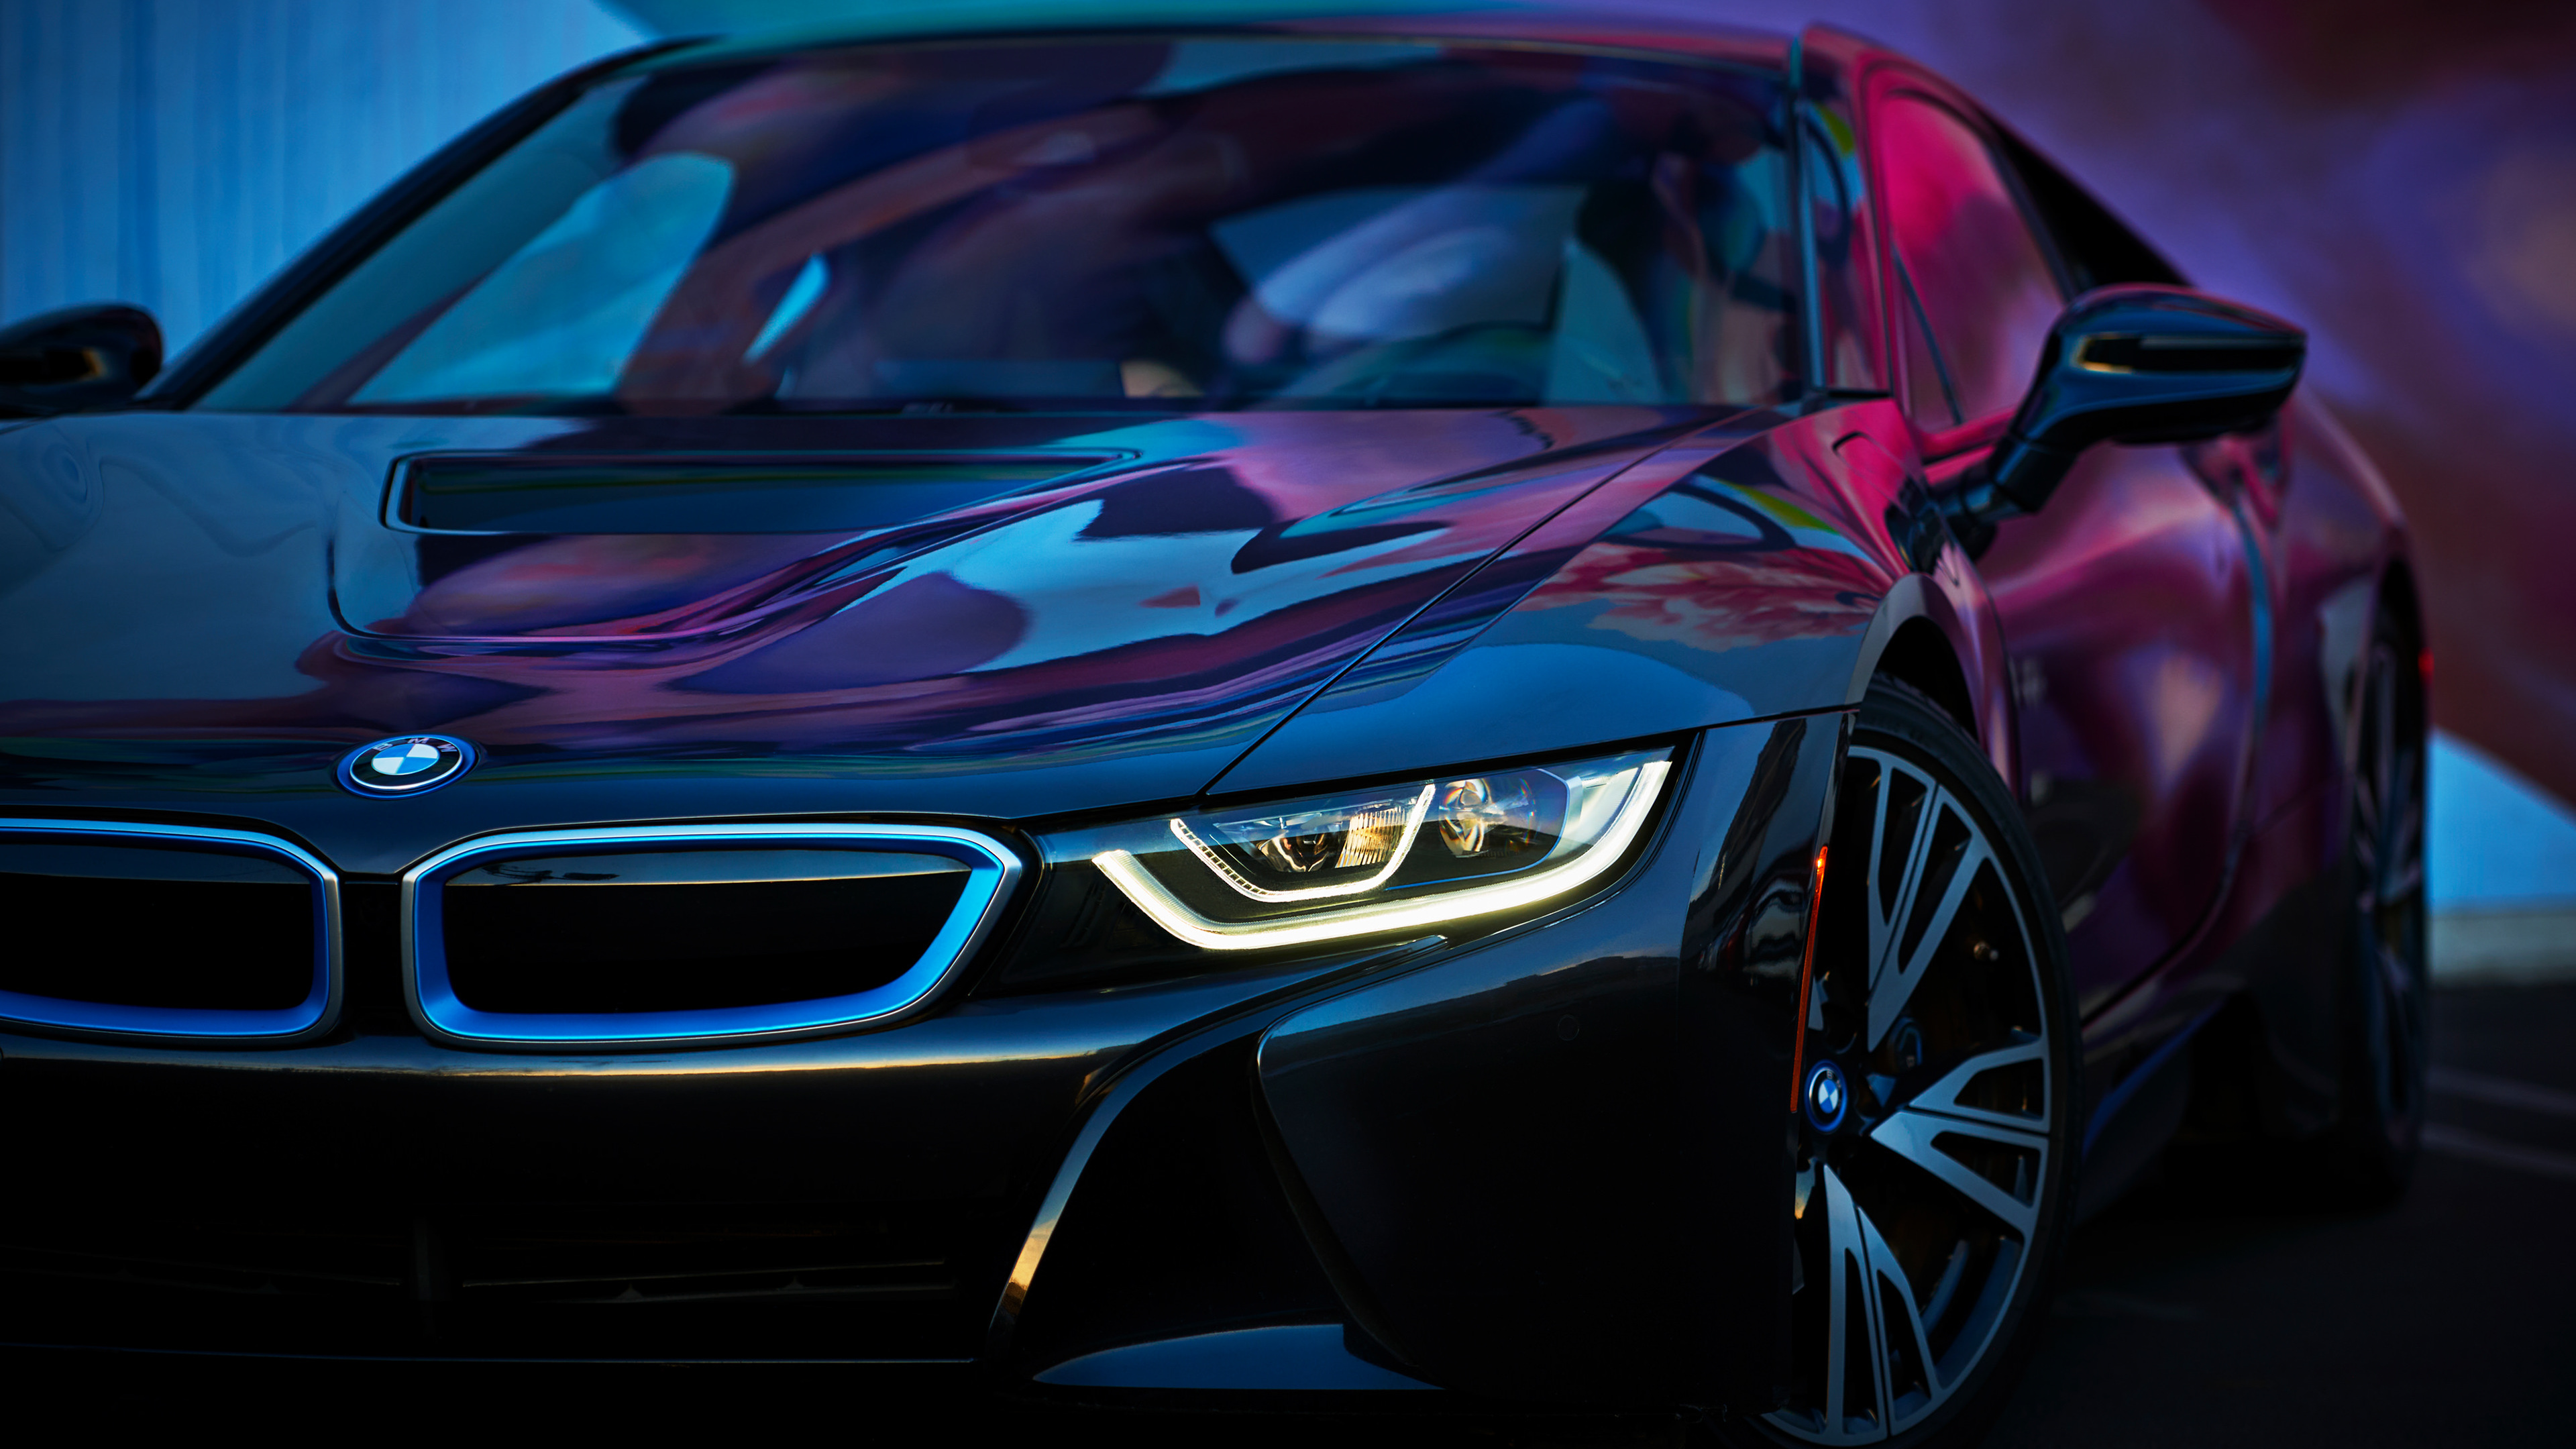 bmw i8 2018 1539109405 - Bmw I8 2018 - hd-wallpapers, cars wallpapers, bmw wallpapers, bmw i8 wallpapers, 4k-wallpapers, 2018 cars wallpapers